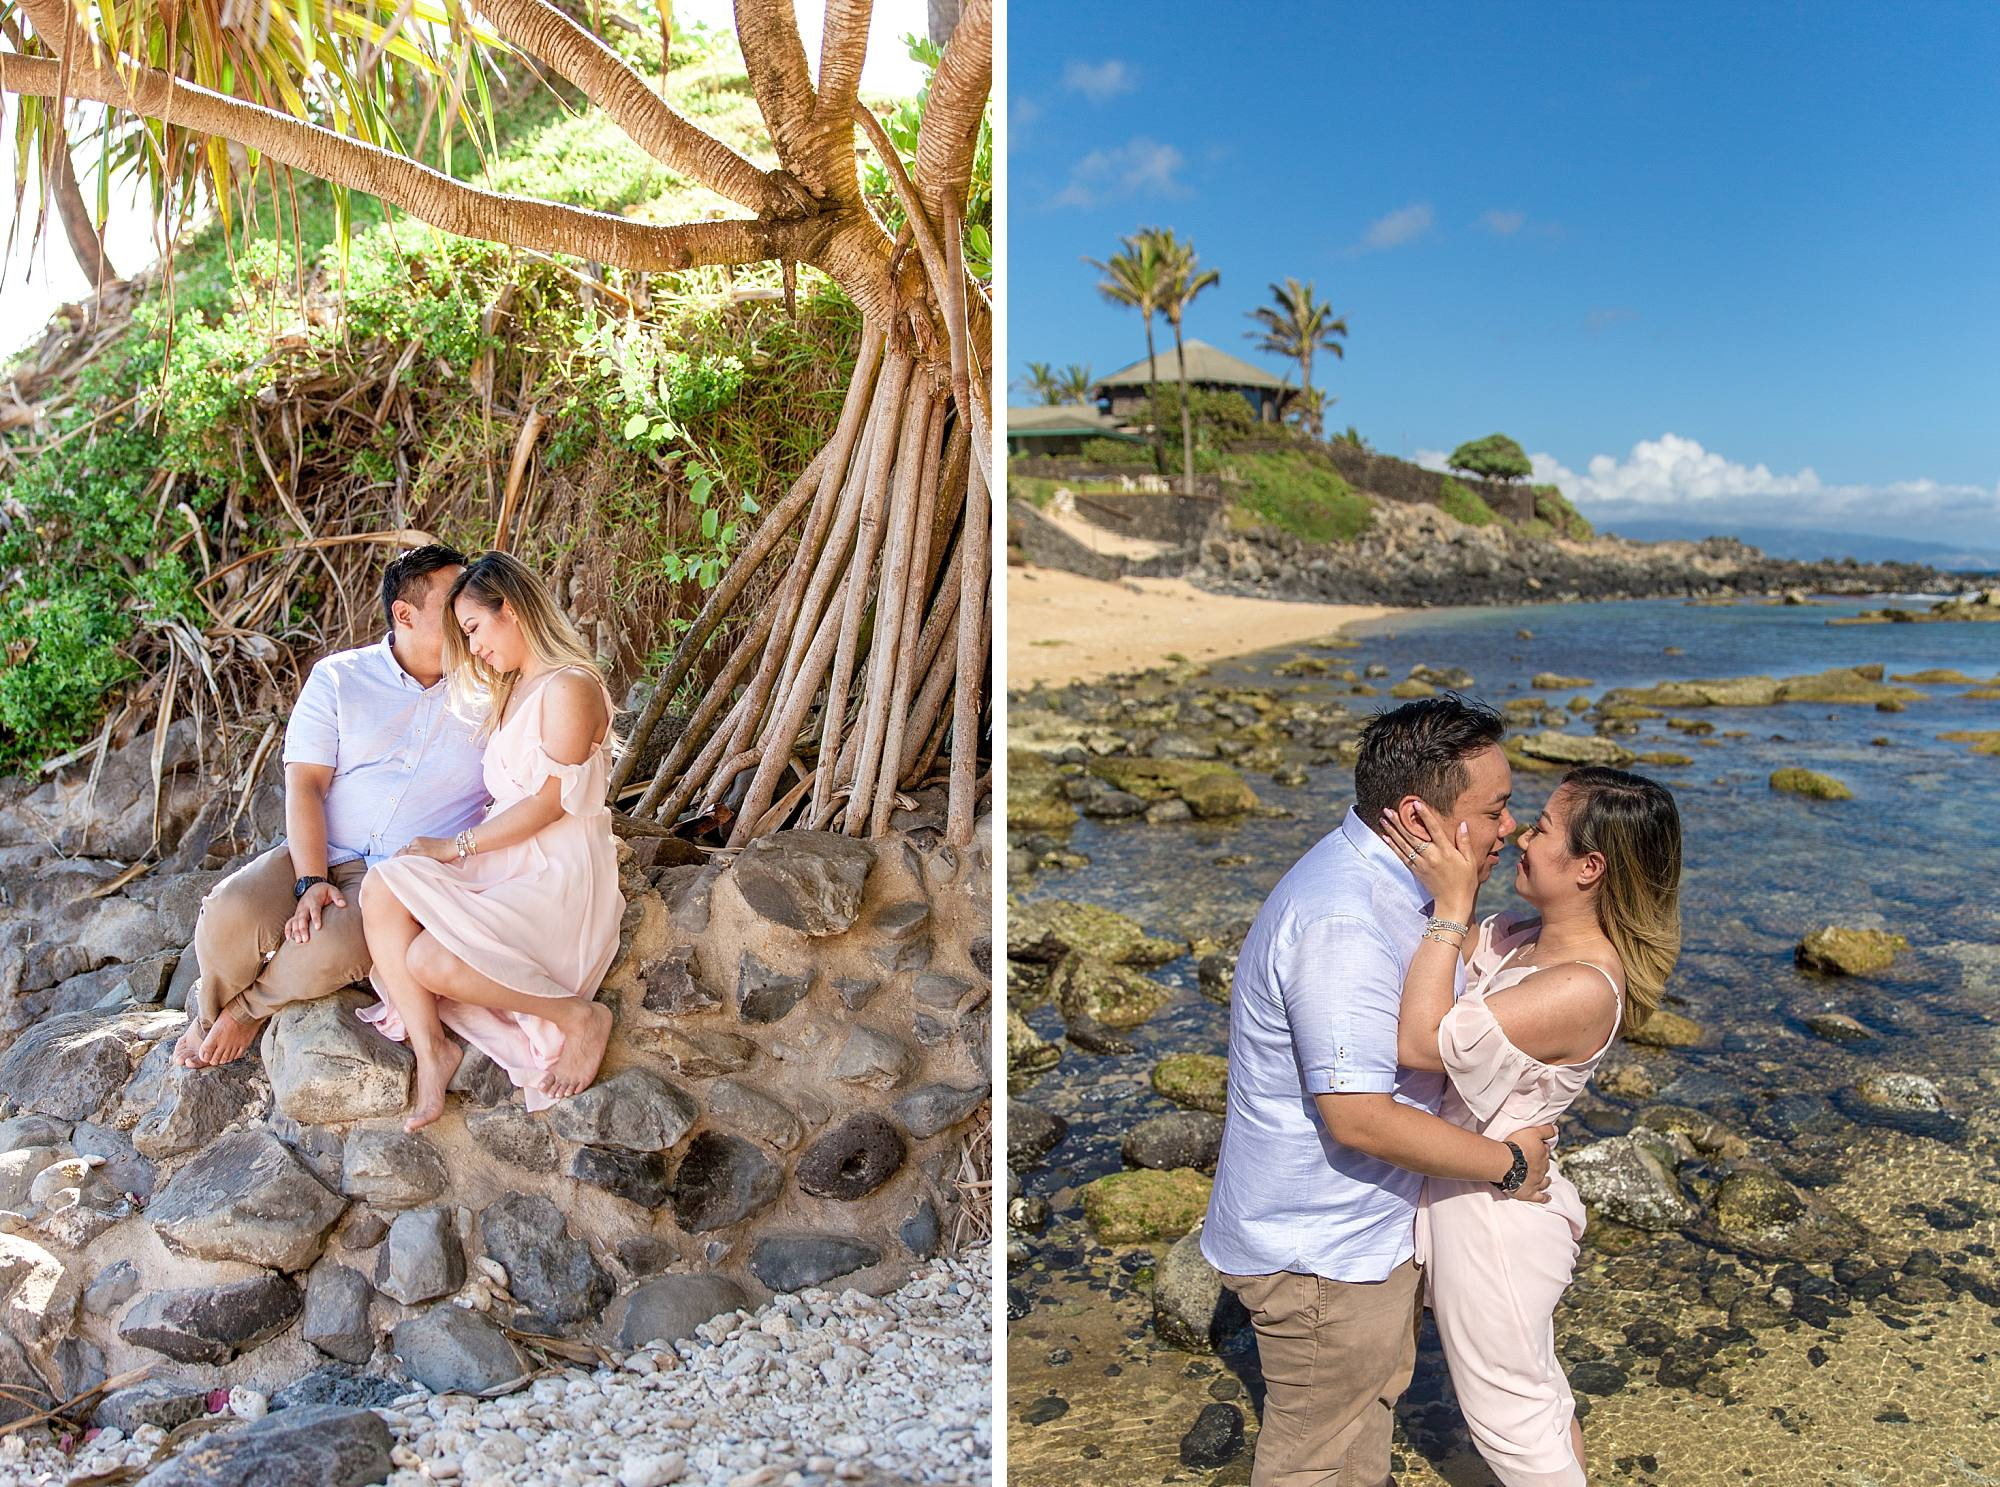 couple enjoying their engagement shoot together and crazy Maui tree in the background